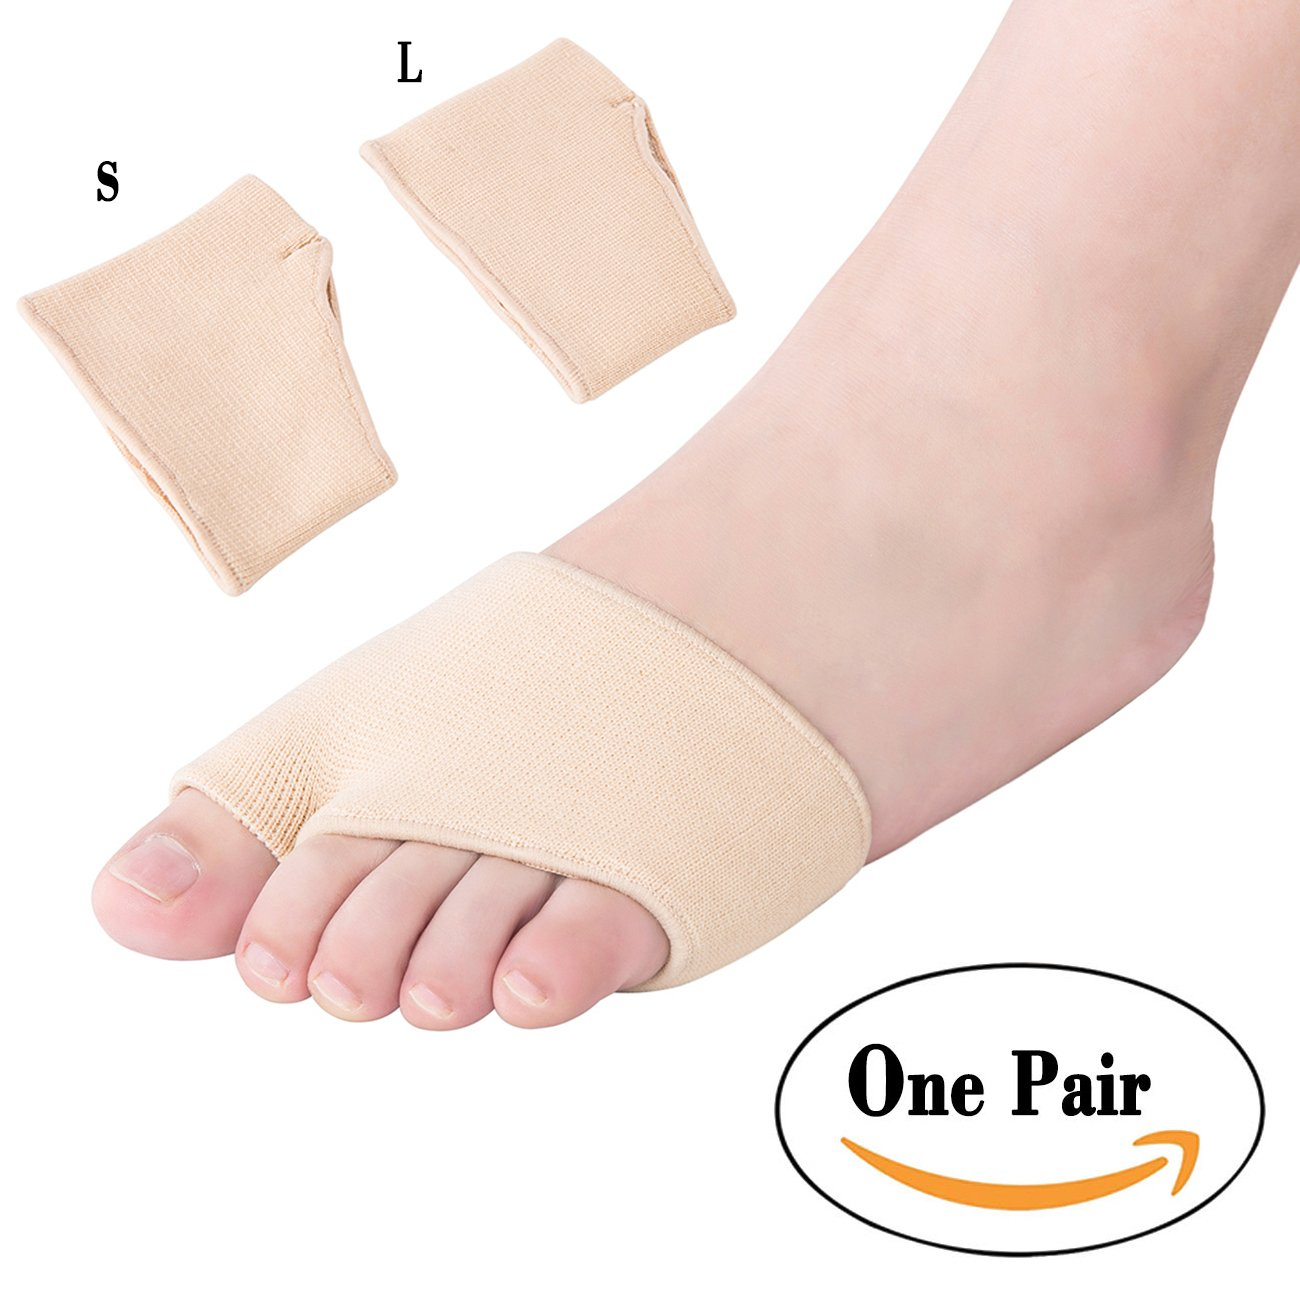 Dr. Kong Bunion Sleeves Half Socks Forefoot Cushions To Relief Forefoot Pain Bunion Aid Corrector (S)